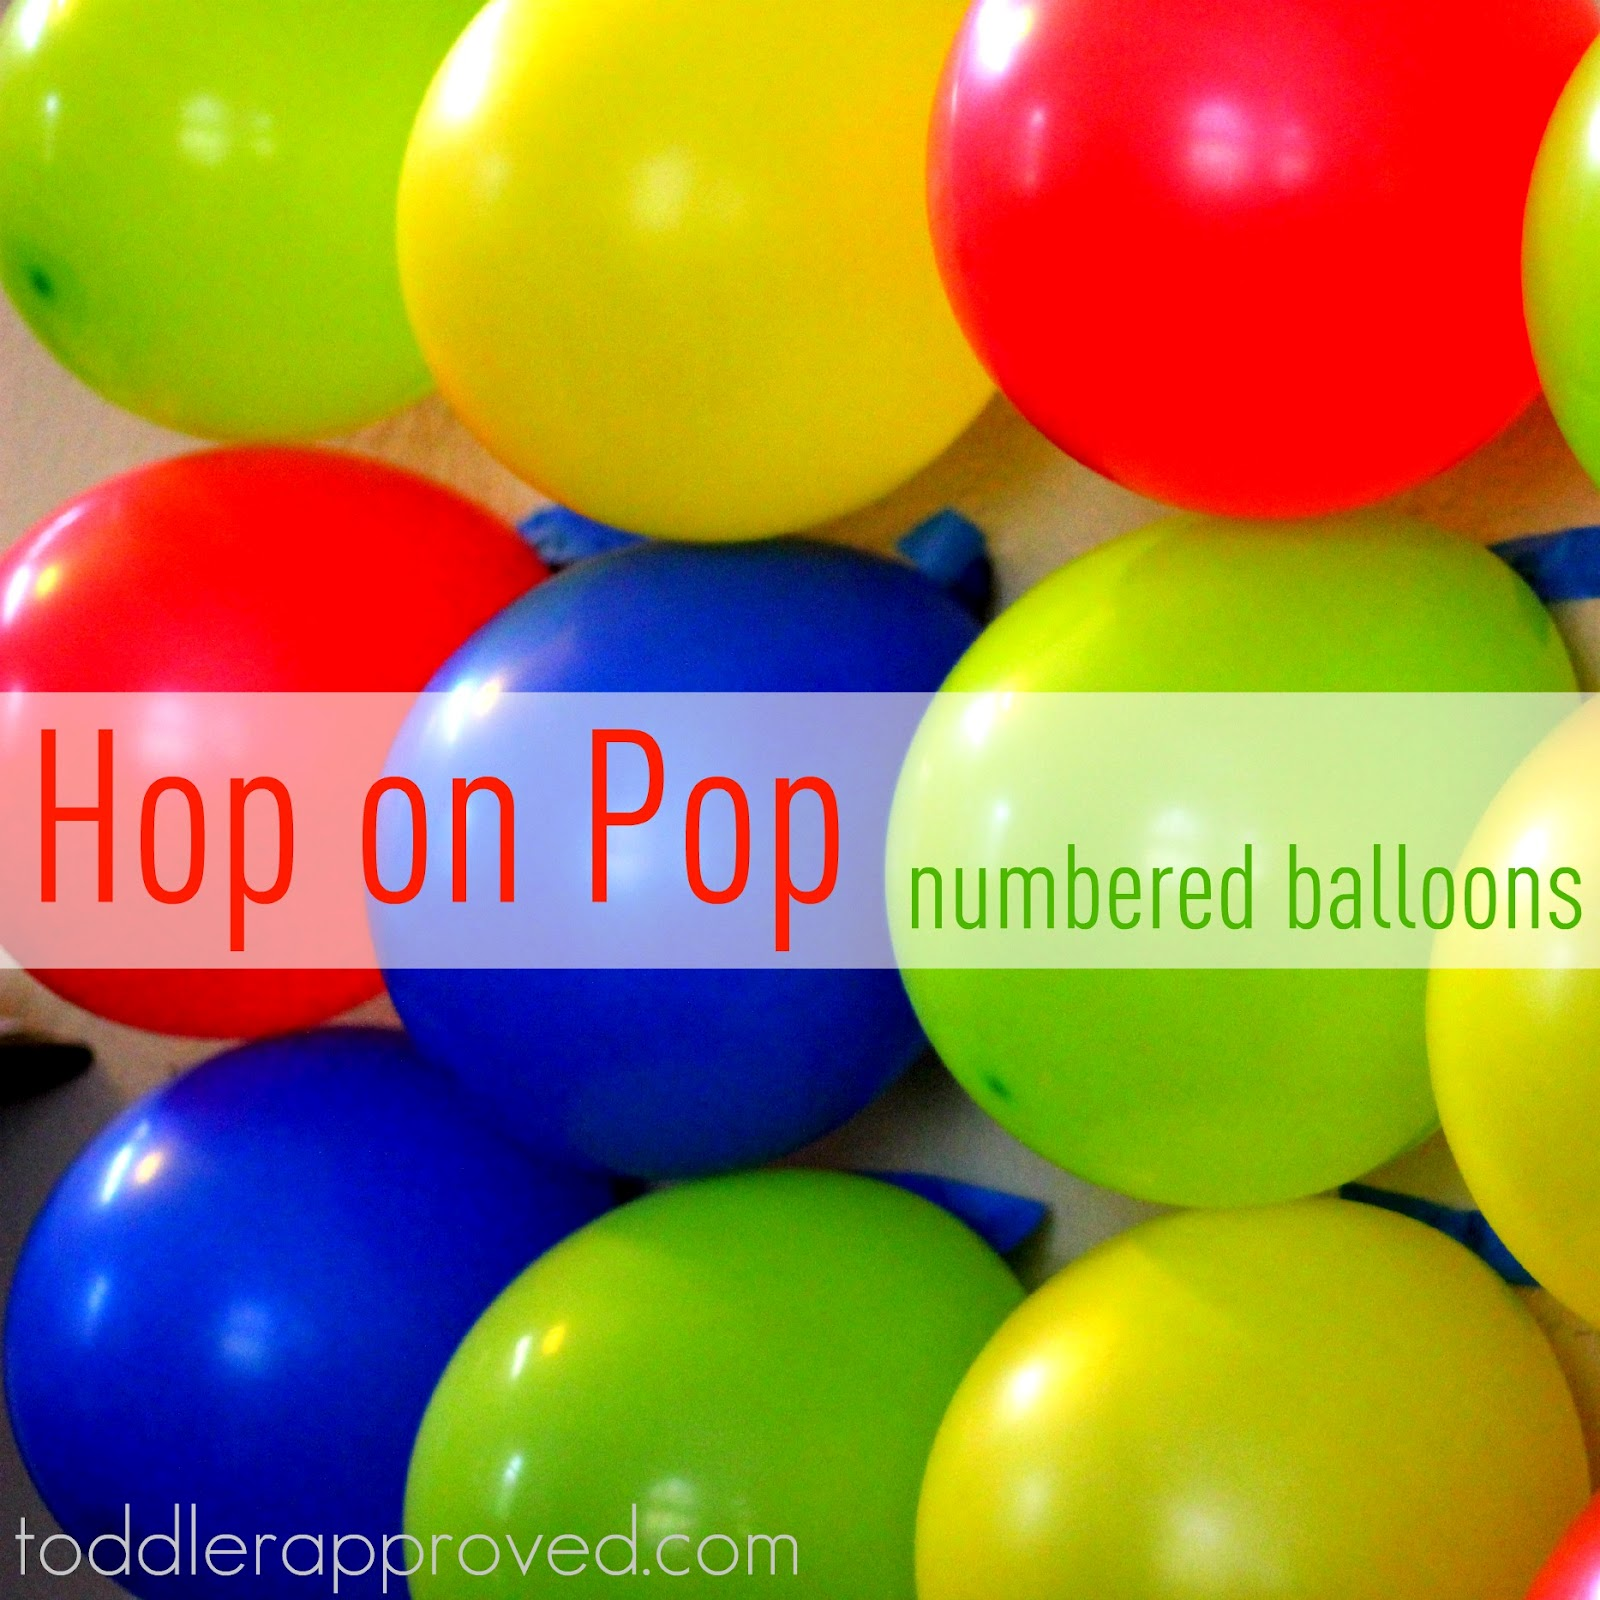 Pop up balloons free gamesdownload free software programs for Free balloon games